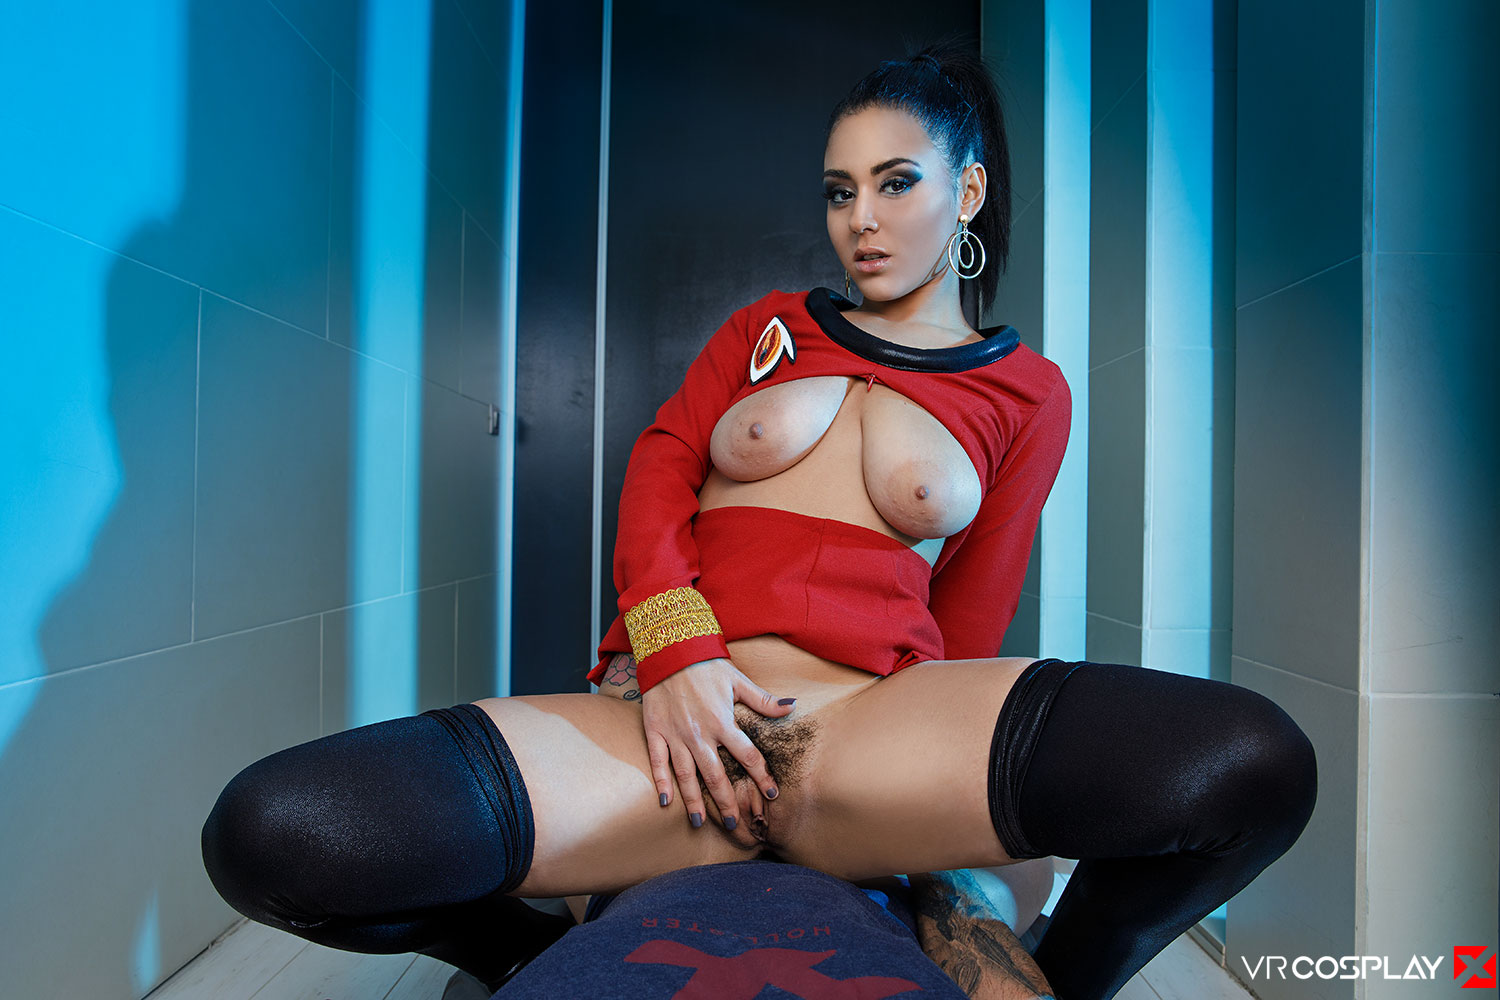 Star trek porn videos